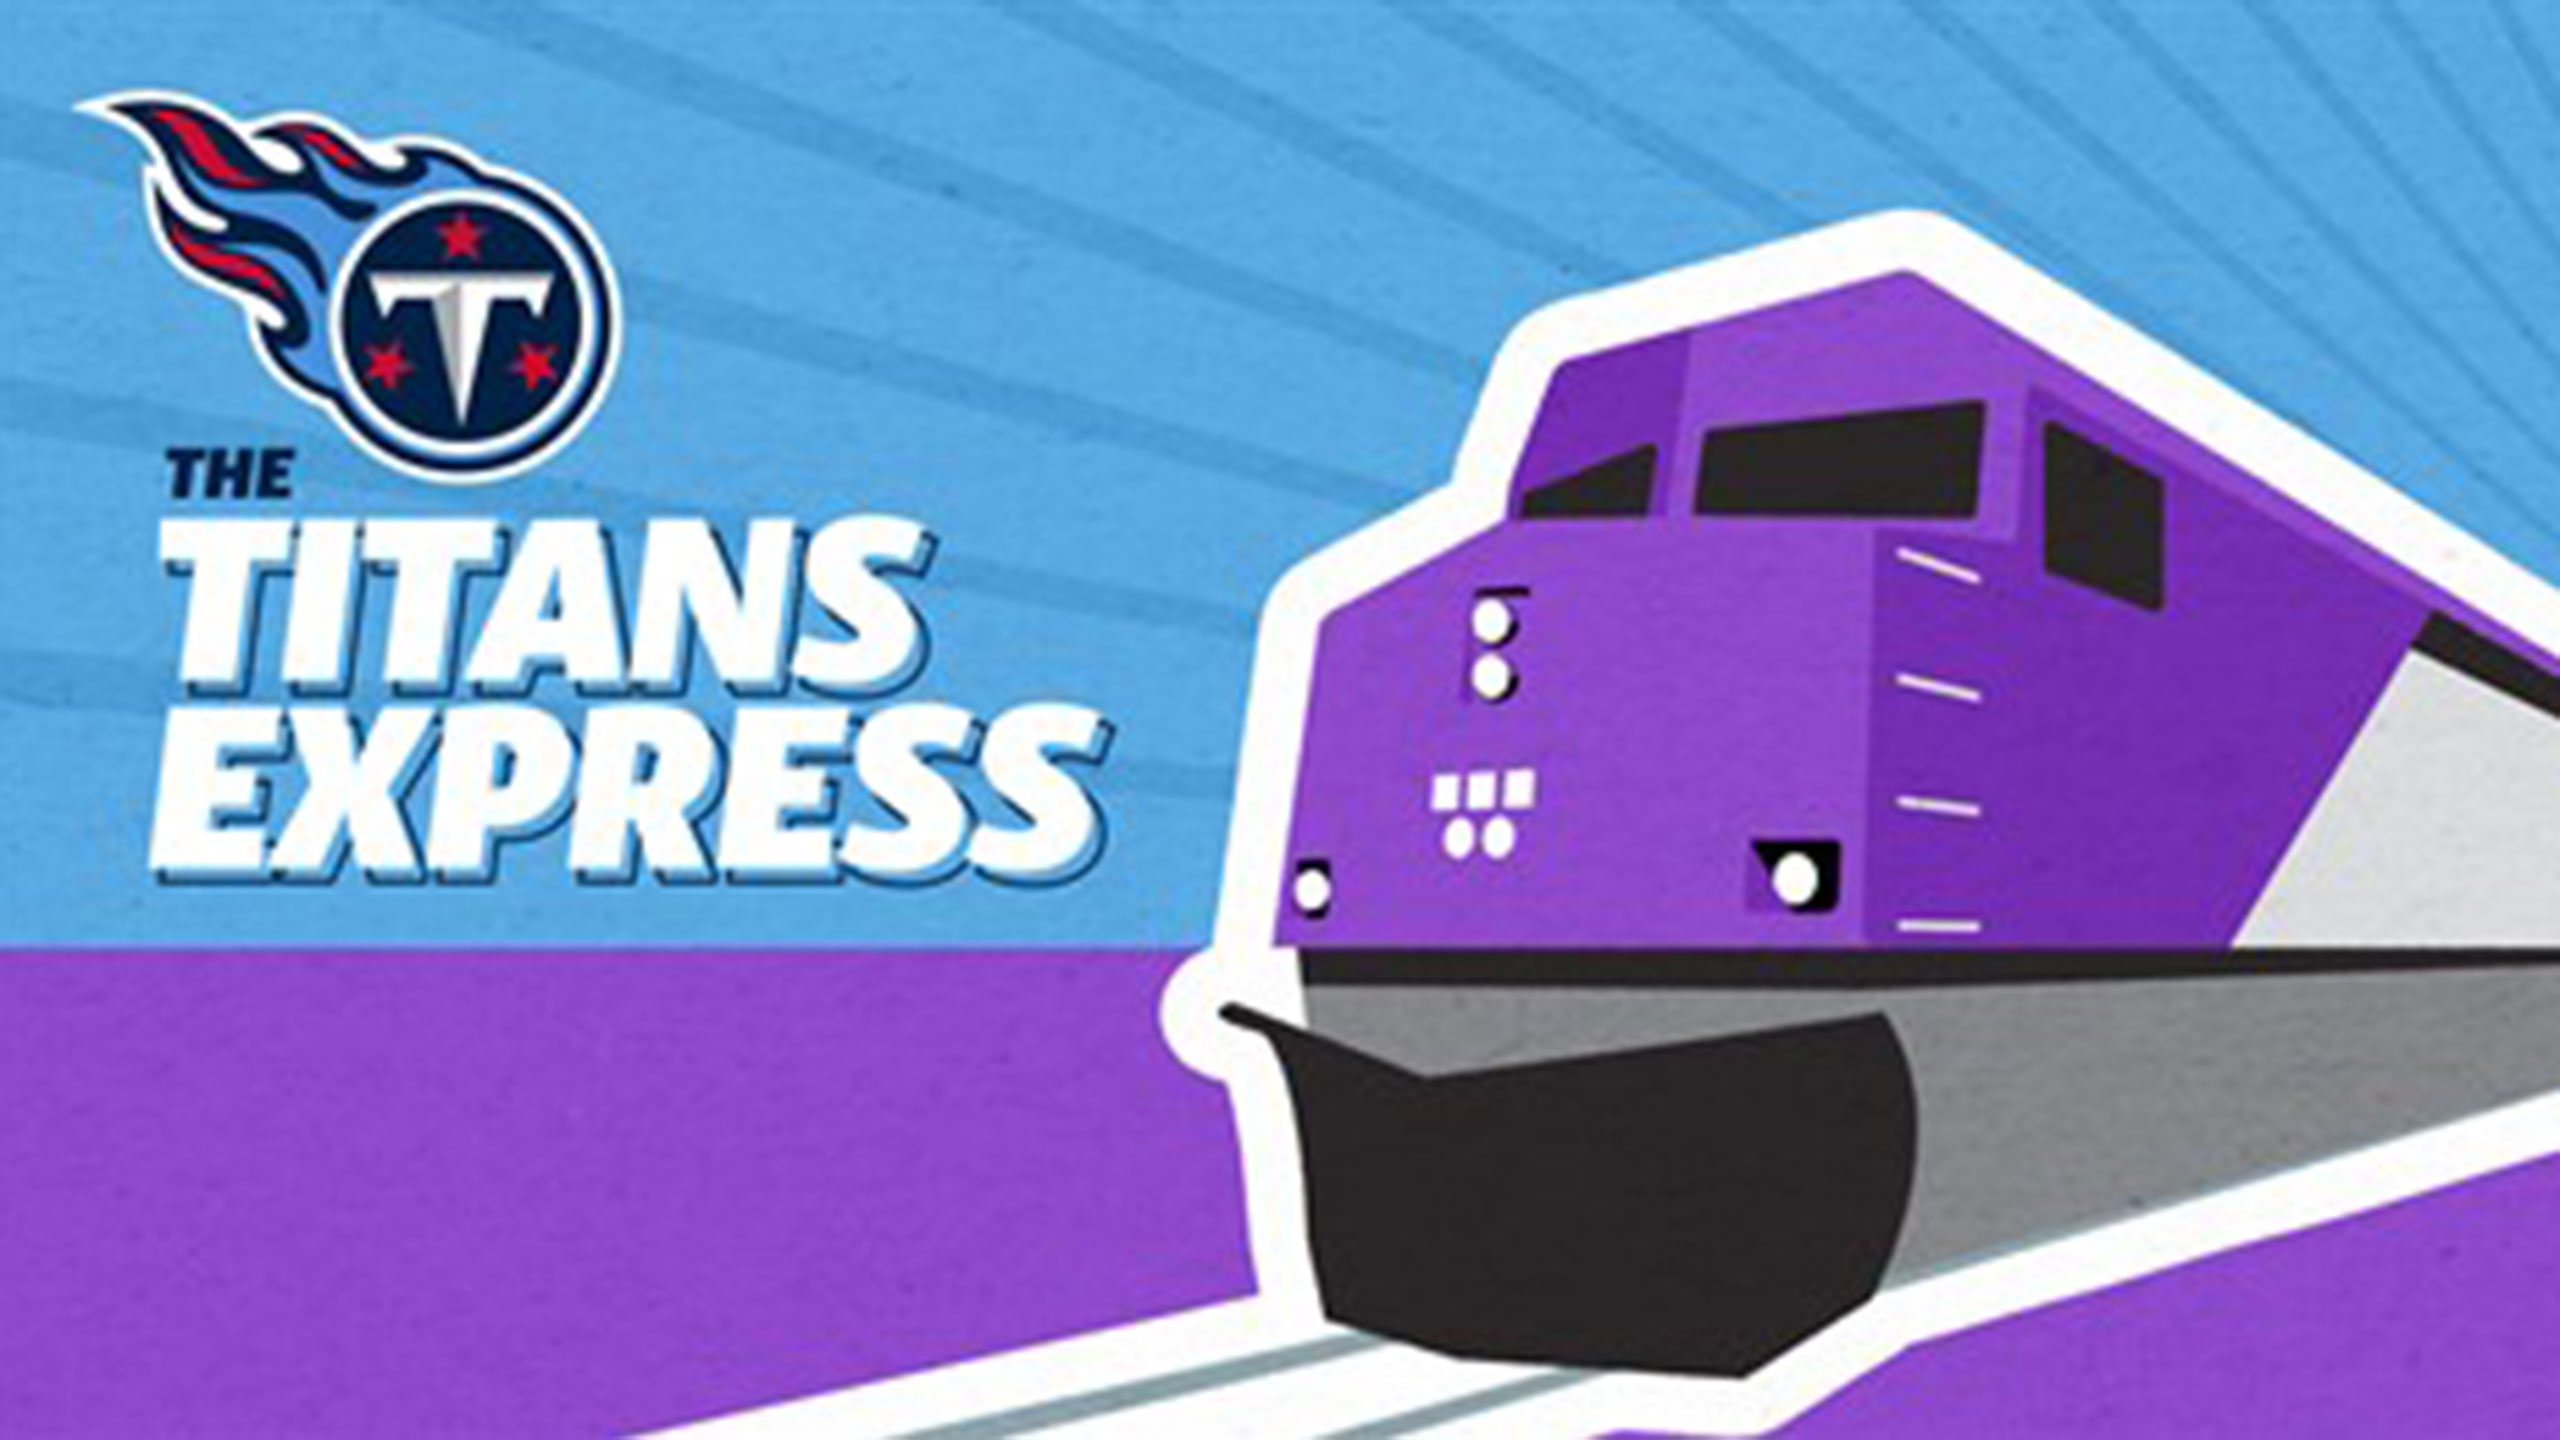 The Titans Express